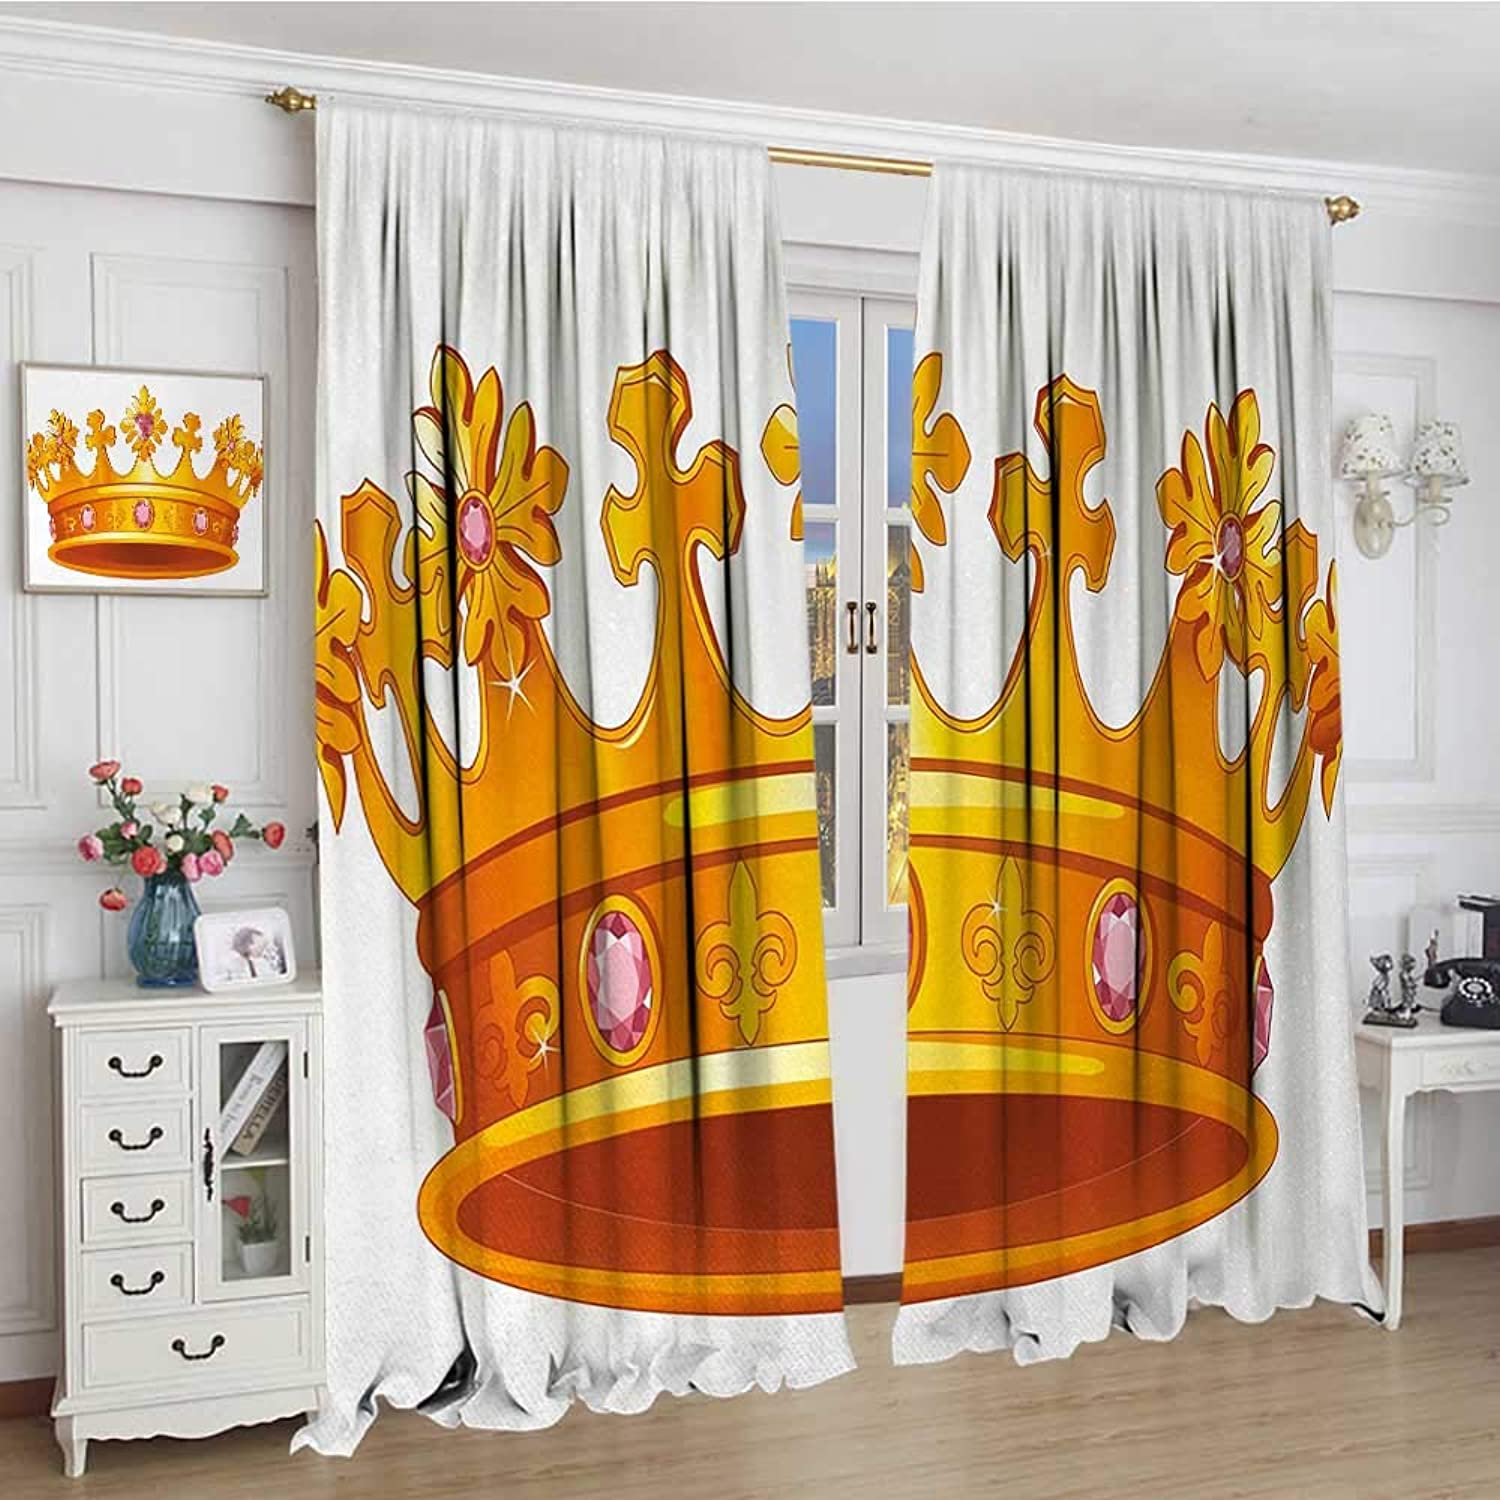 Smallbeefly Queen Thermal Insulating Blackout Curtain Crown with Pale Pink Gemstone Figures Antique Tiara Nobility Symbol Cartoon Decorative Curtains for Living Room 96 x96  orange and pink